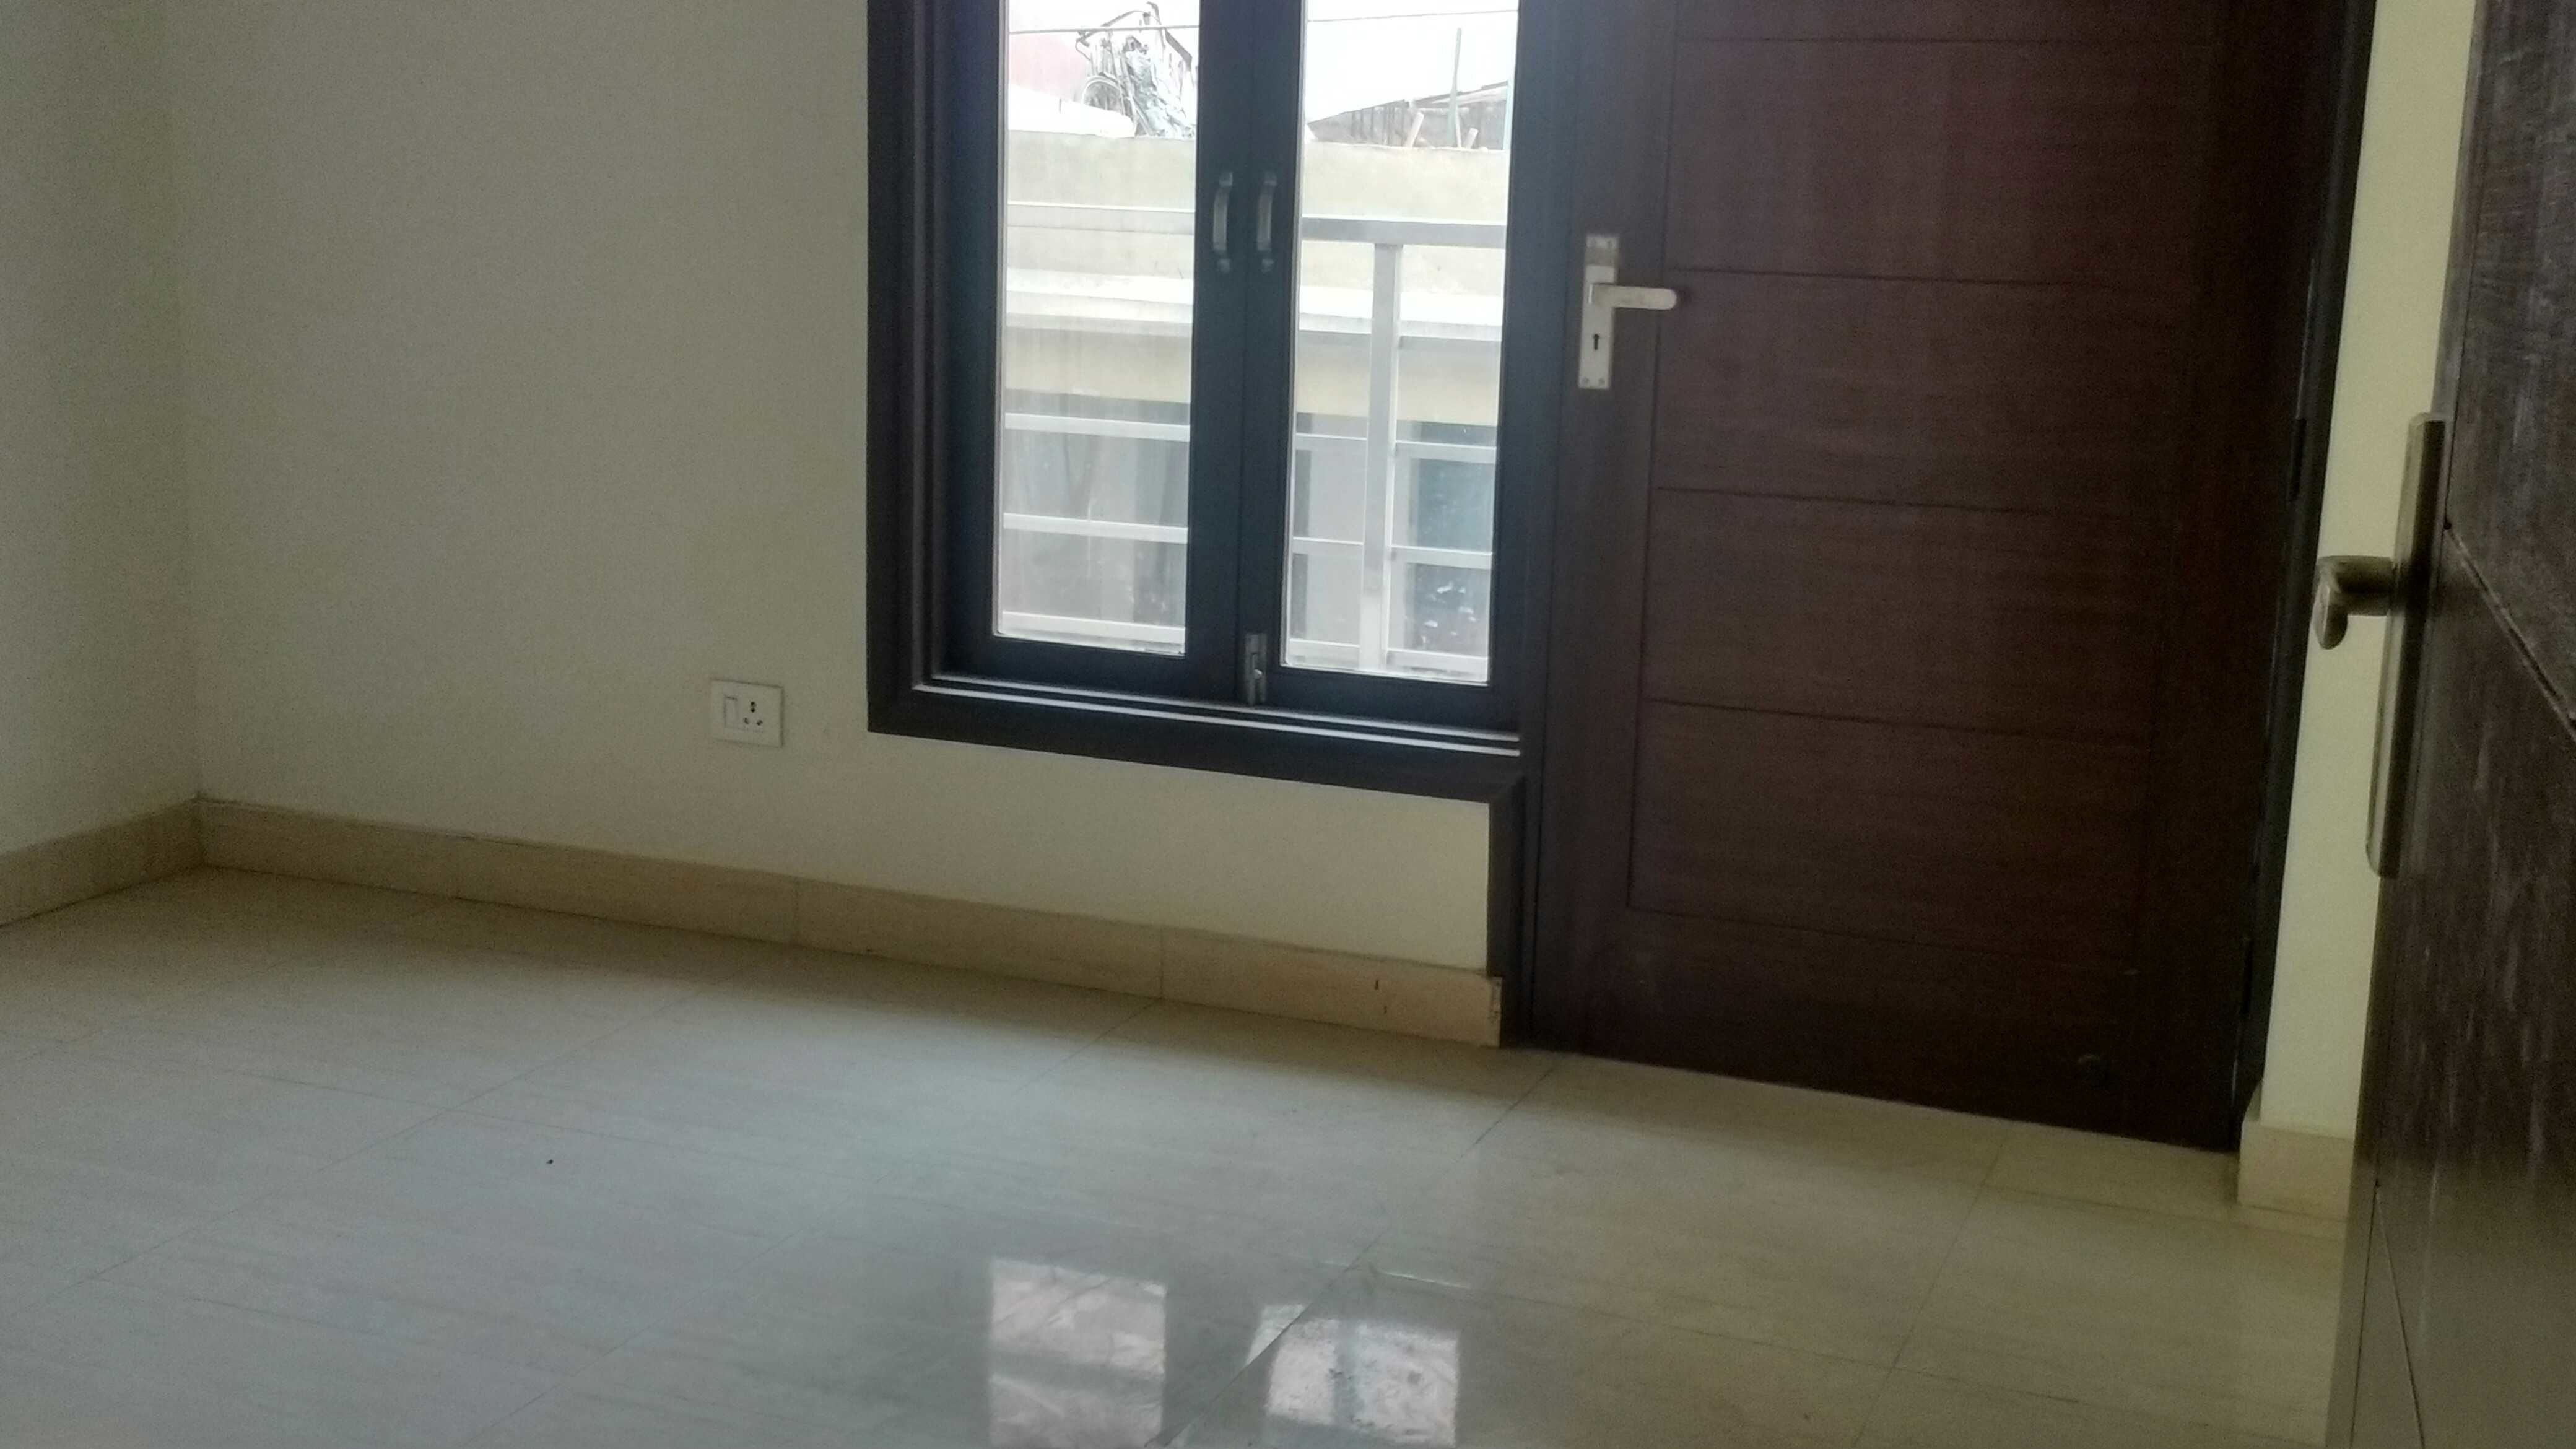 1500 sq ft 3BHK 3BHK (1,500 sq ft) Property By Daksh Property In Project, Chattarpur Enclave Phase 2